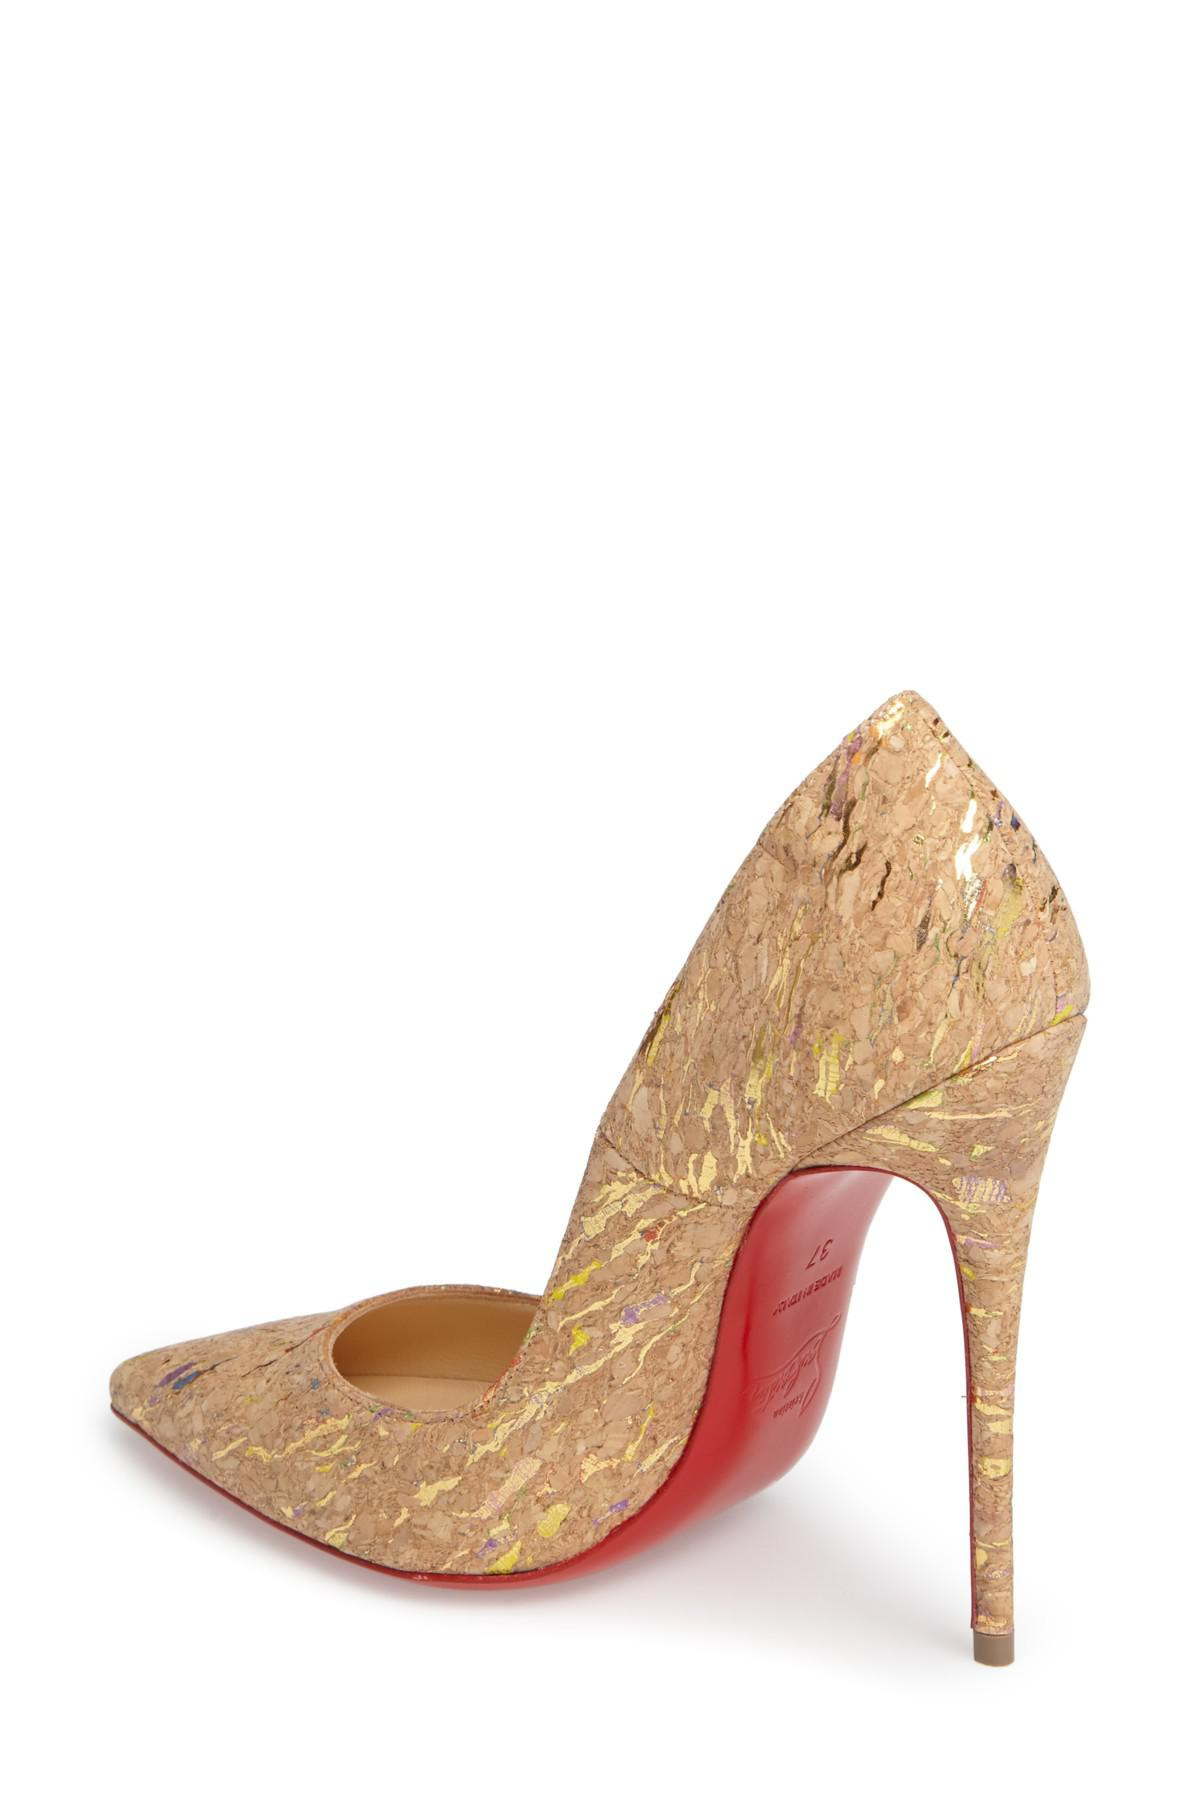 00ac2c05097d Lyst - Christian Louboutin  so Kate  Pointy Toe Pump in Natural